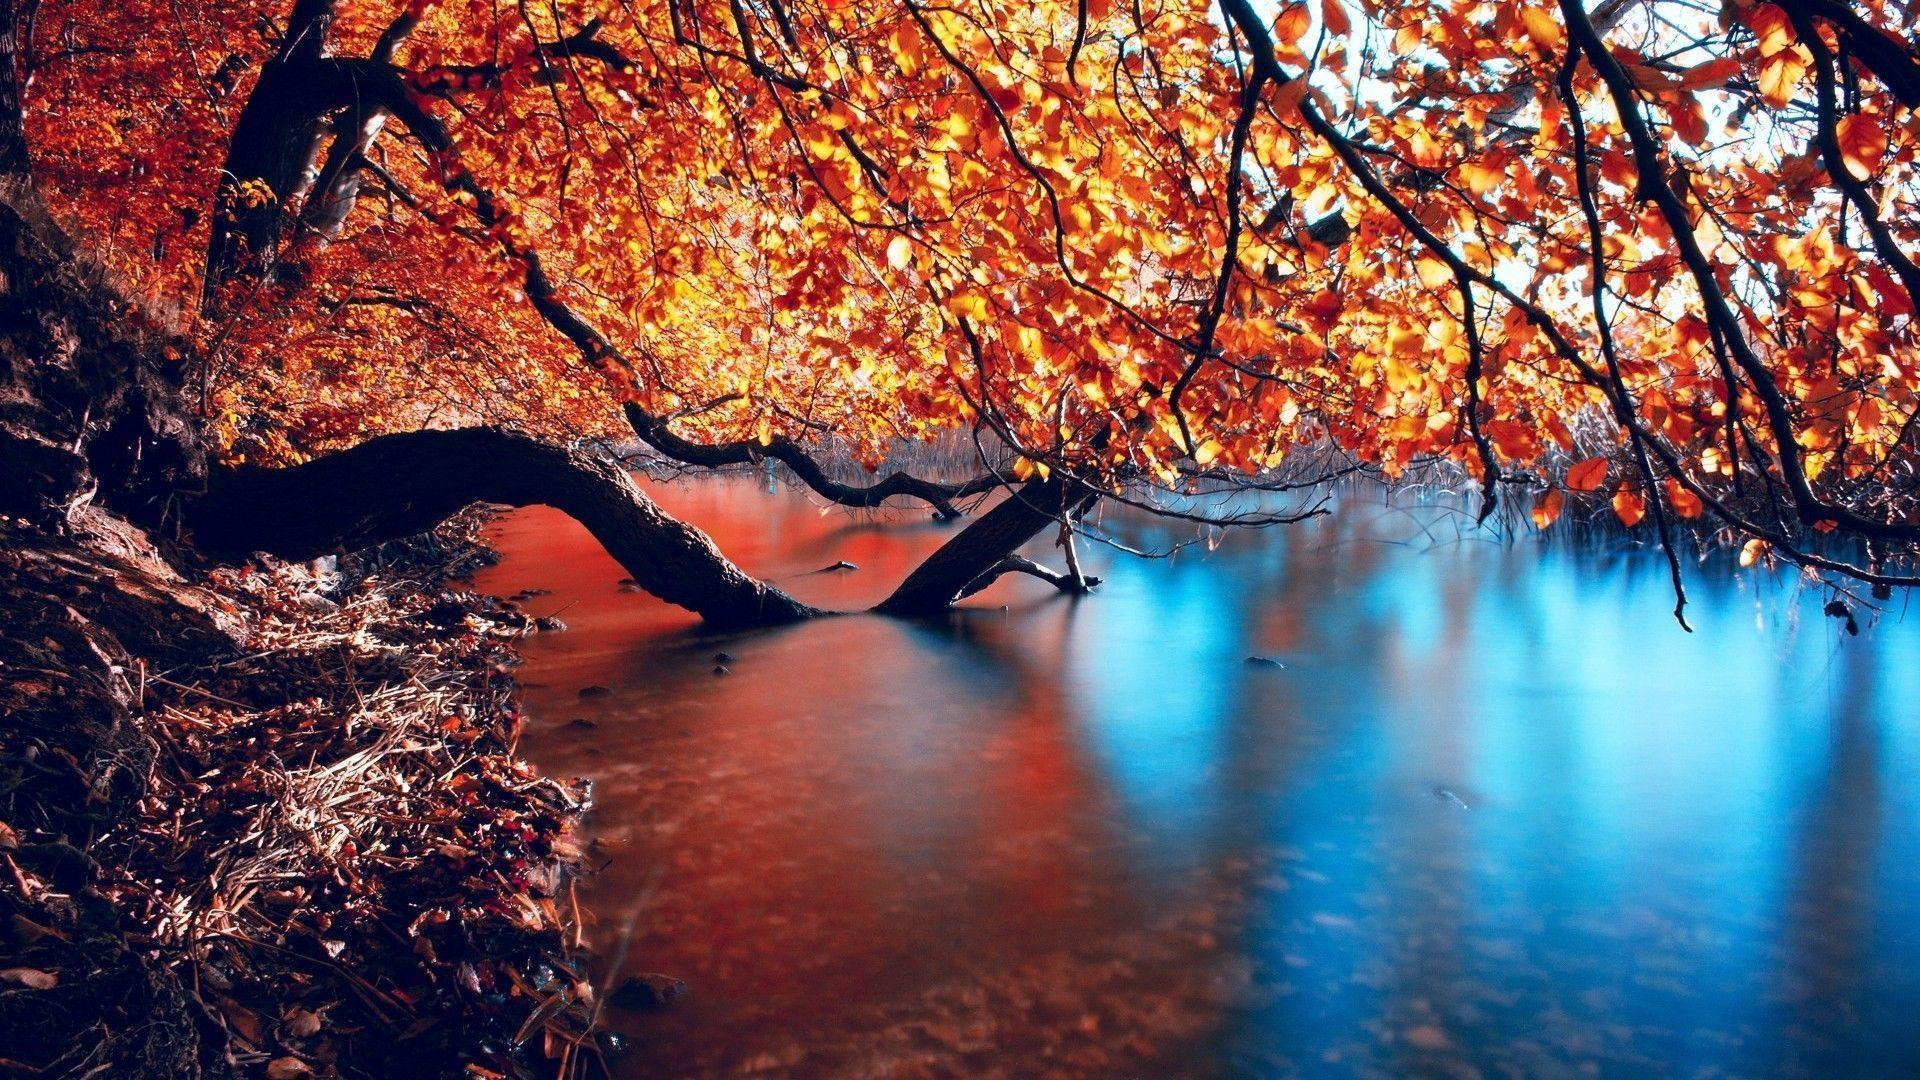 autumn hd wallpapers - wallpaper cave